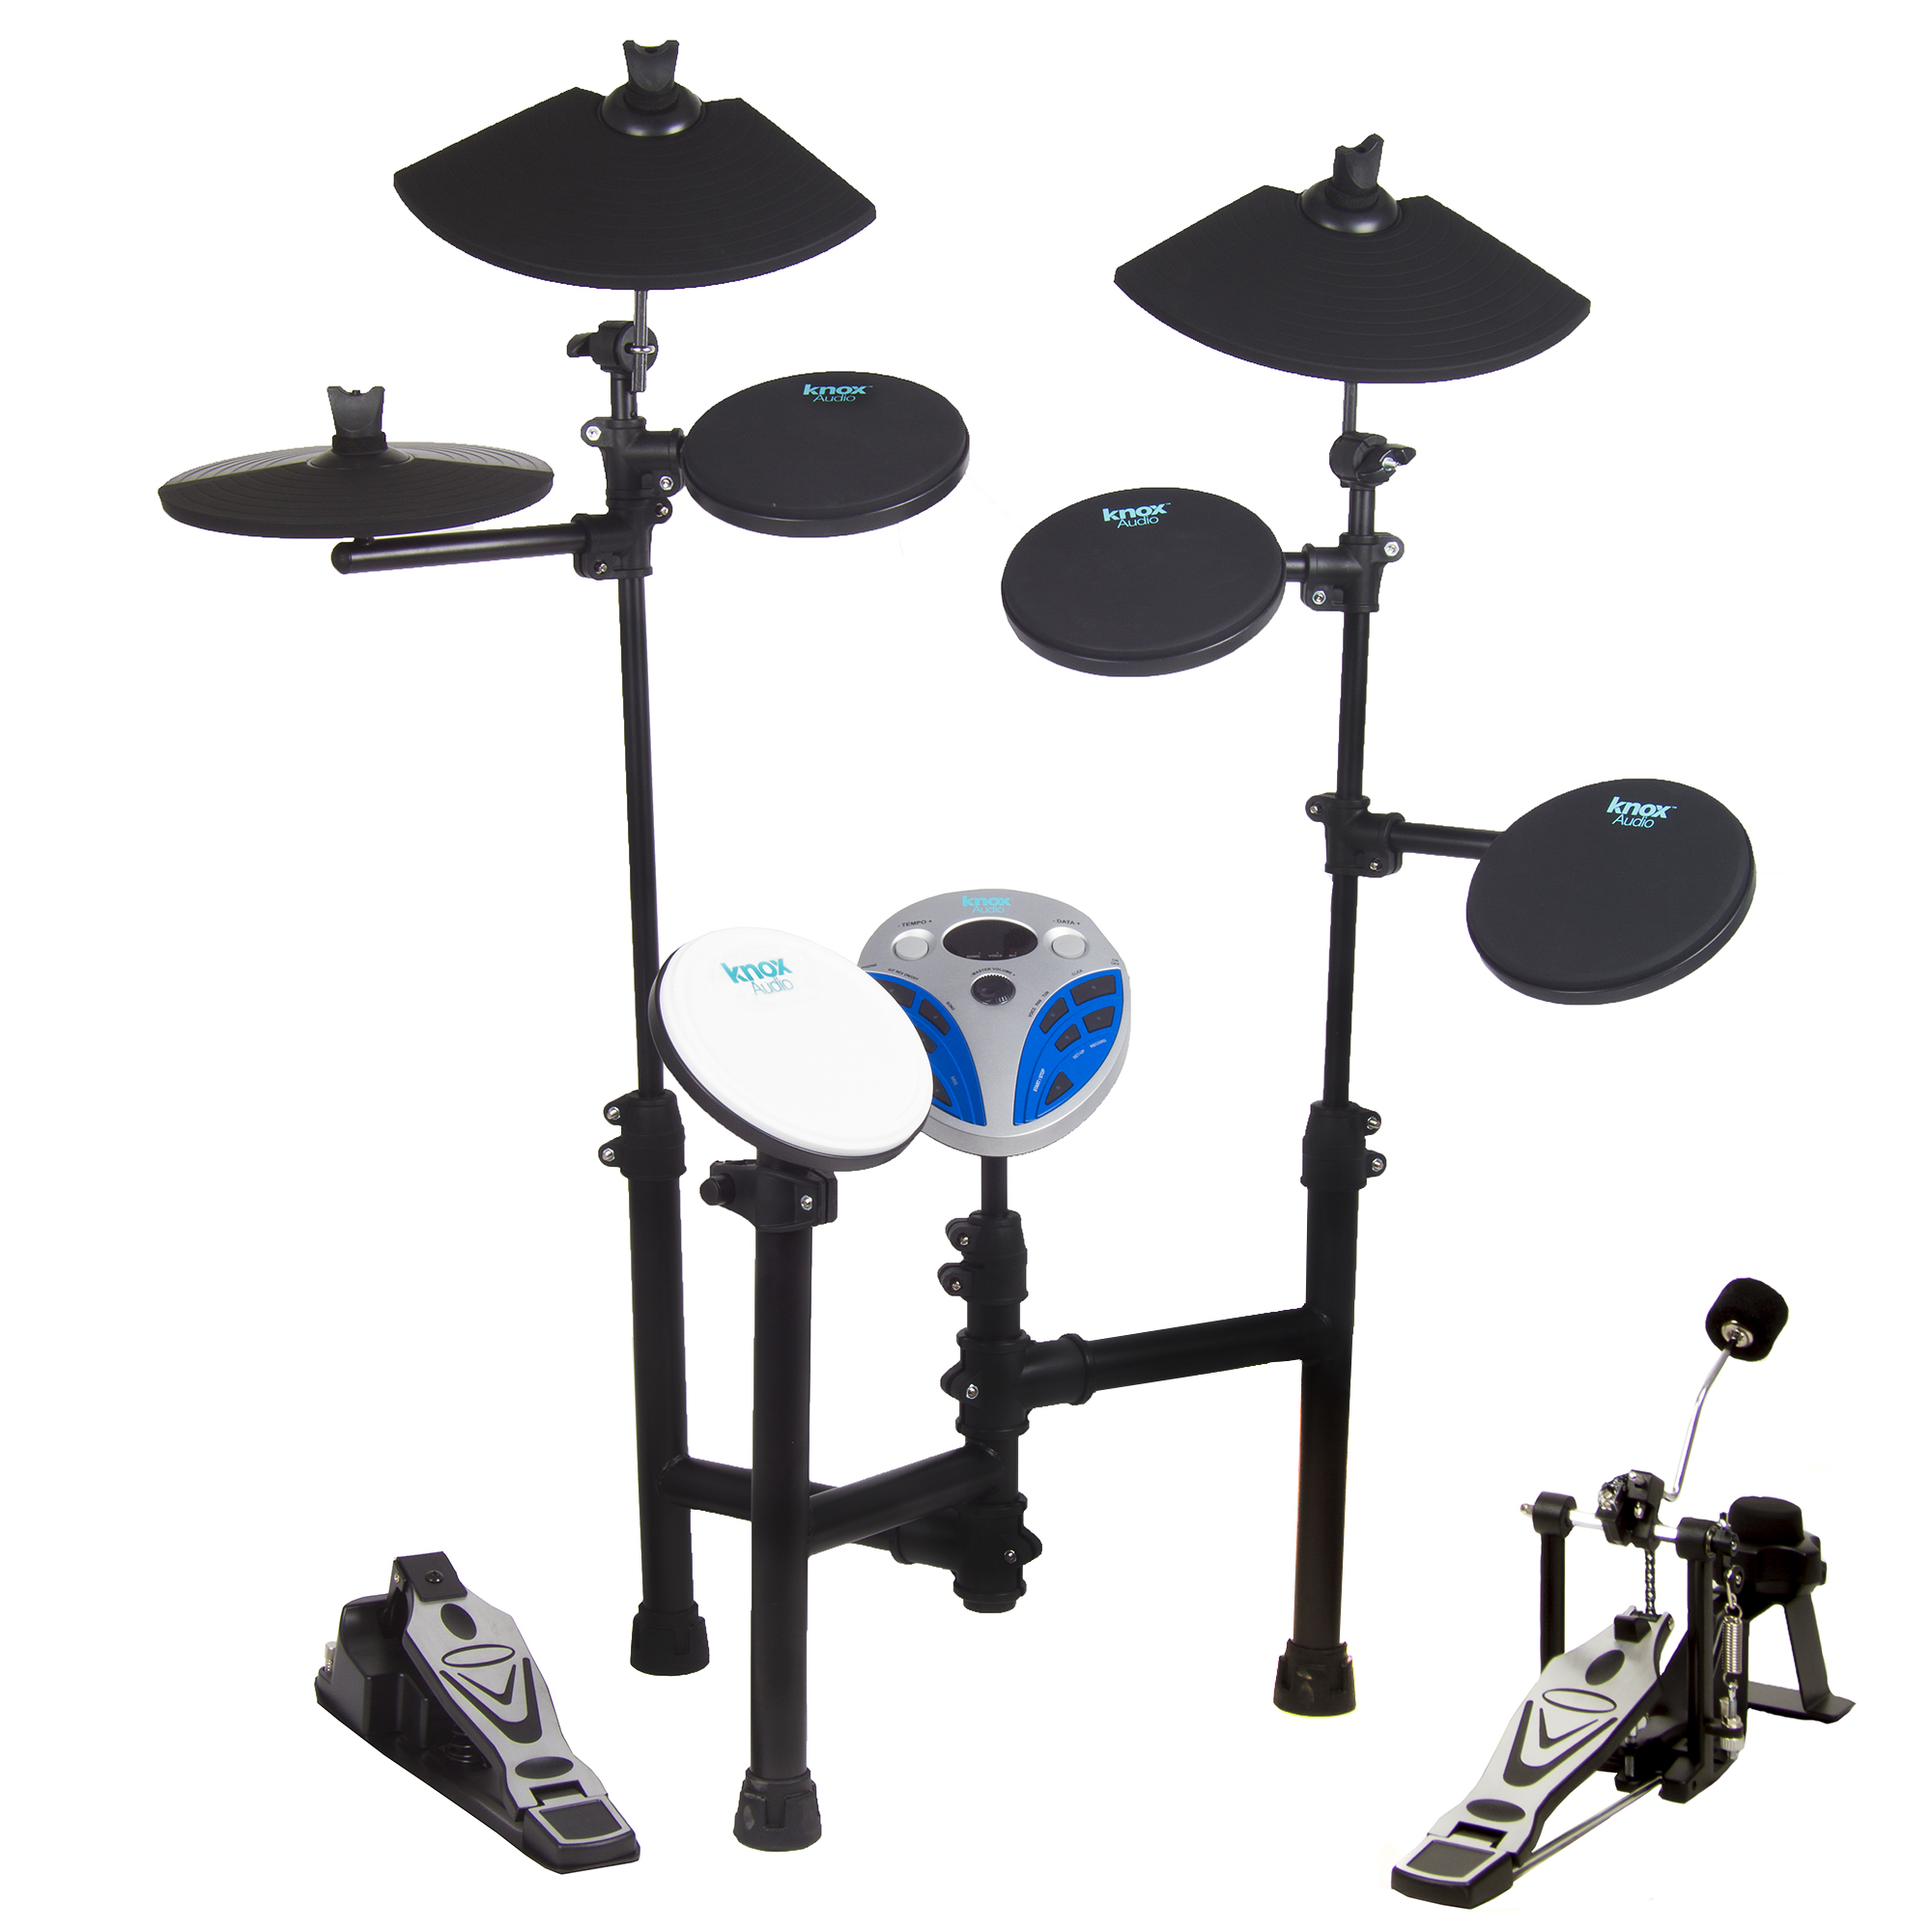 Knox 5 Drum 3 Cymbal Entry Level Electric Drum Set by Knox